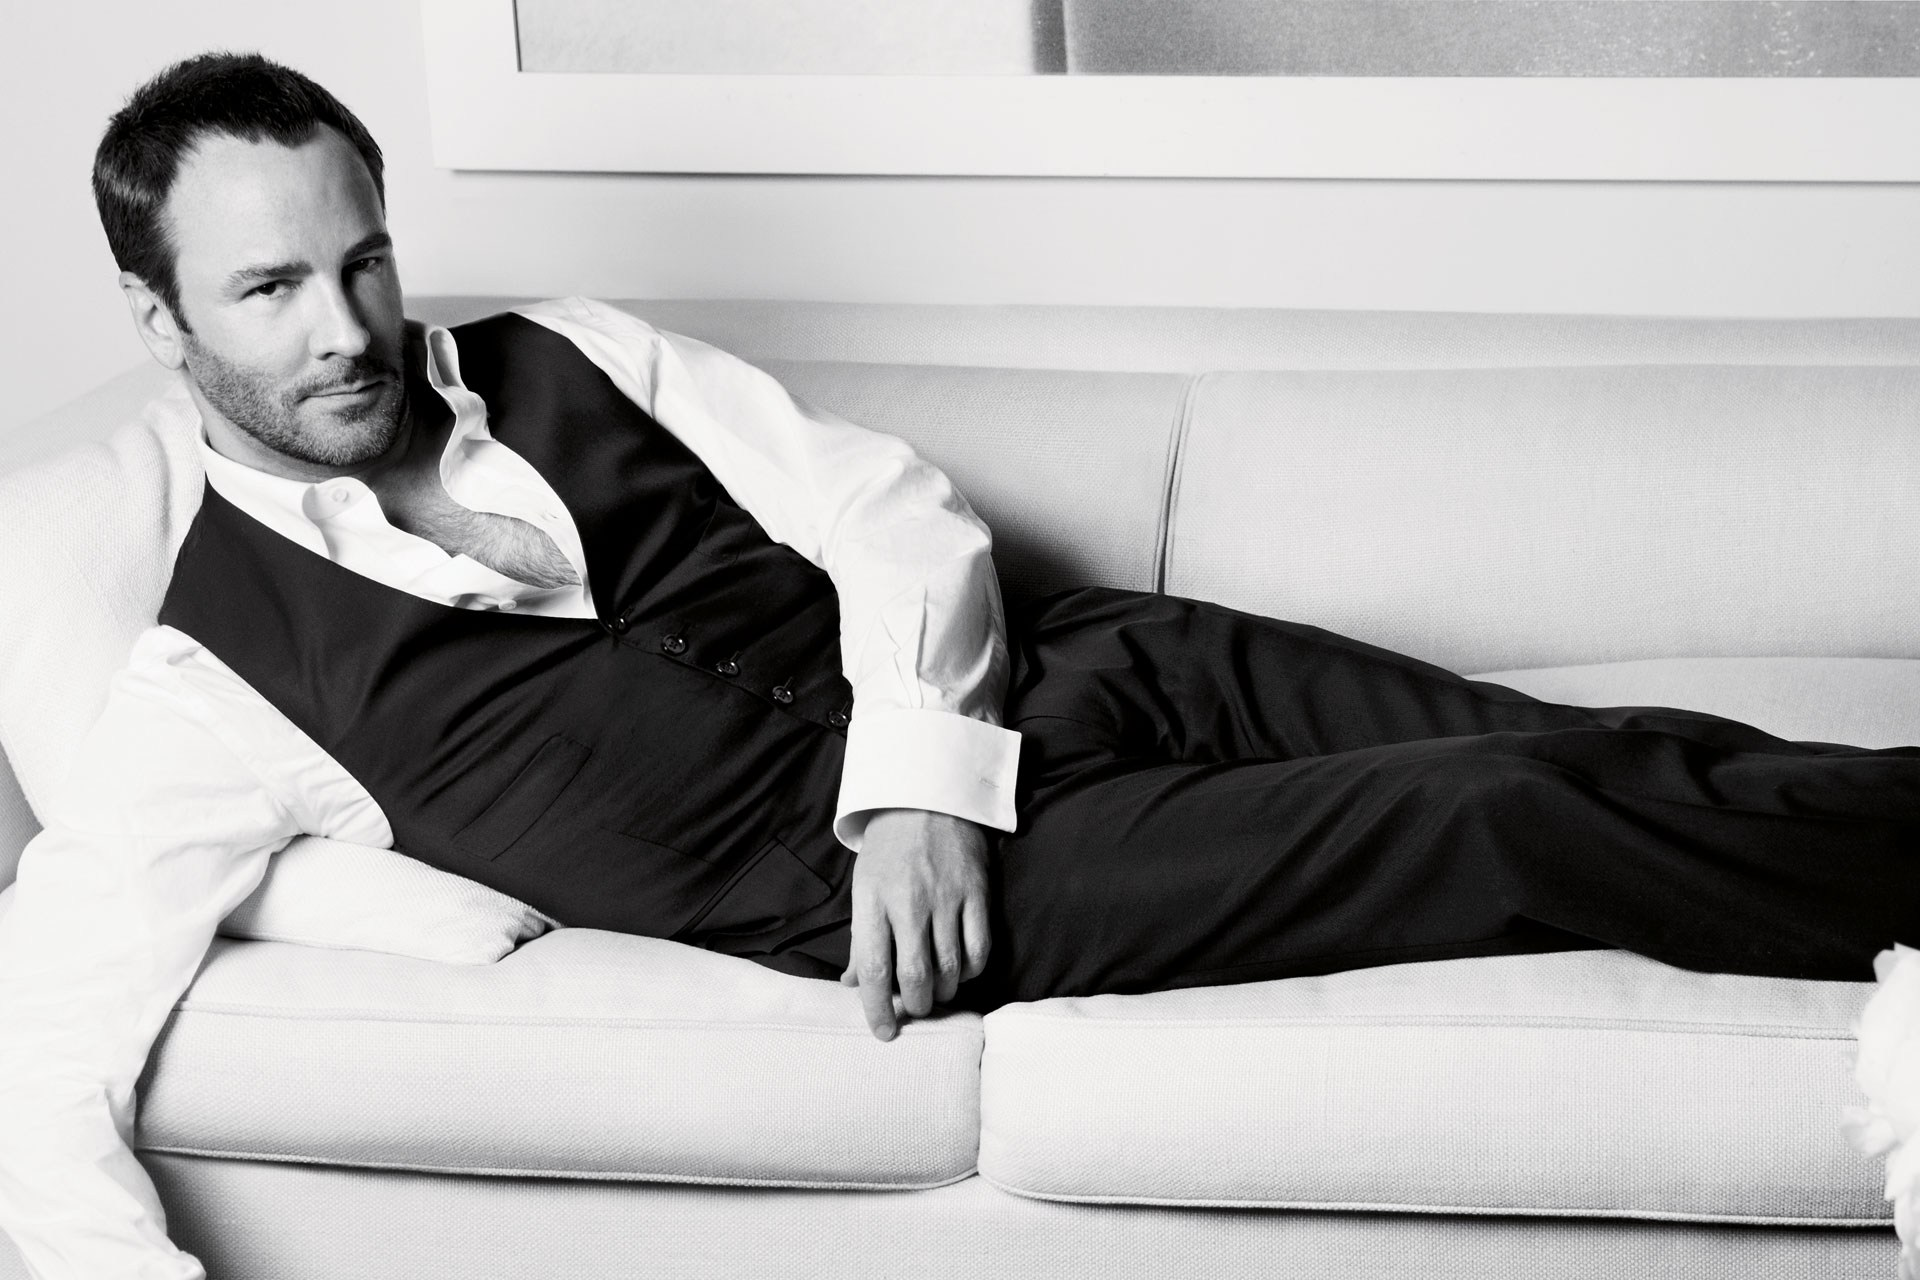 Tom Ford Thinks All Men Should Be Penetrated At Least Once